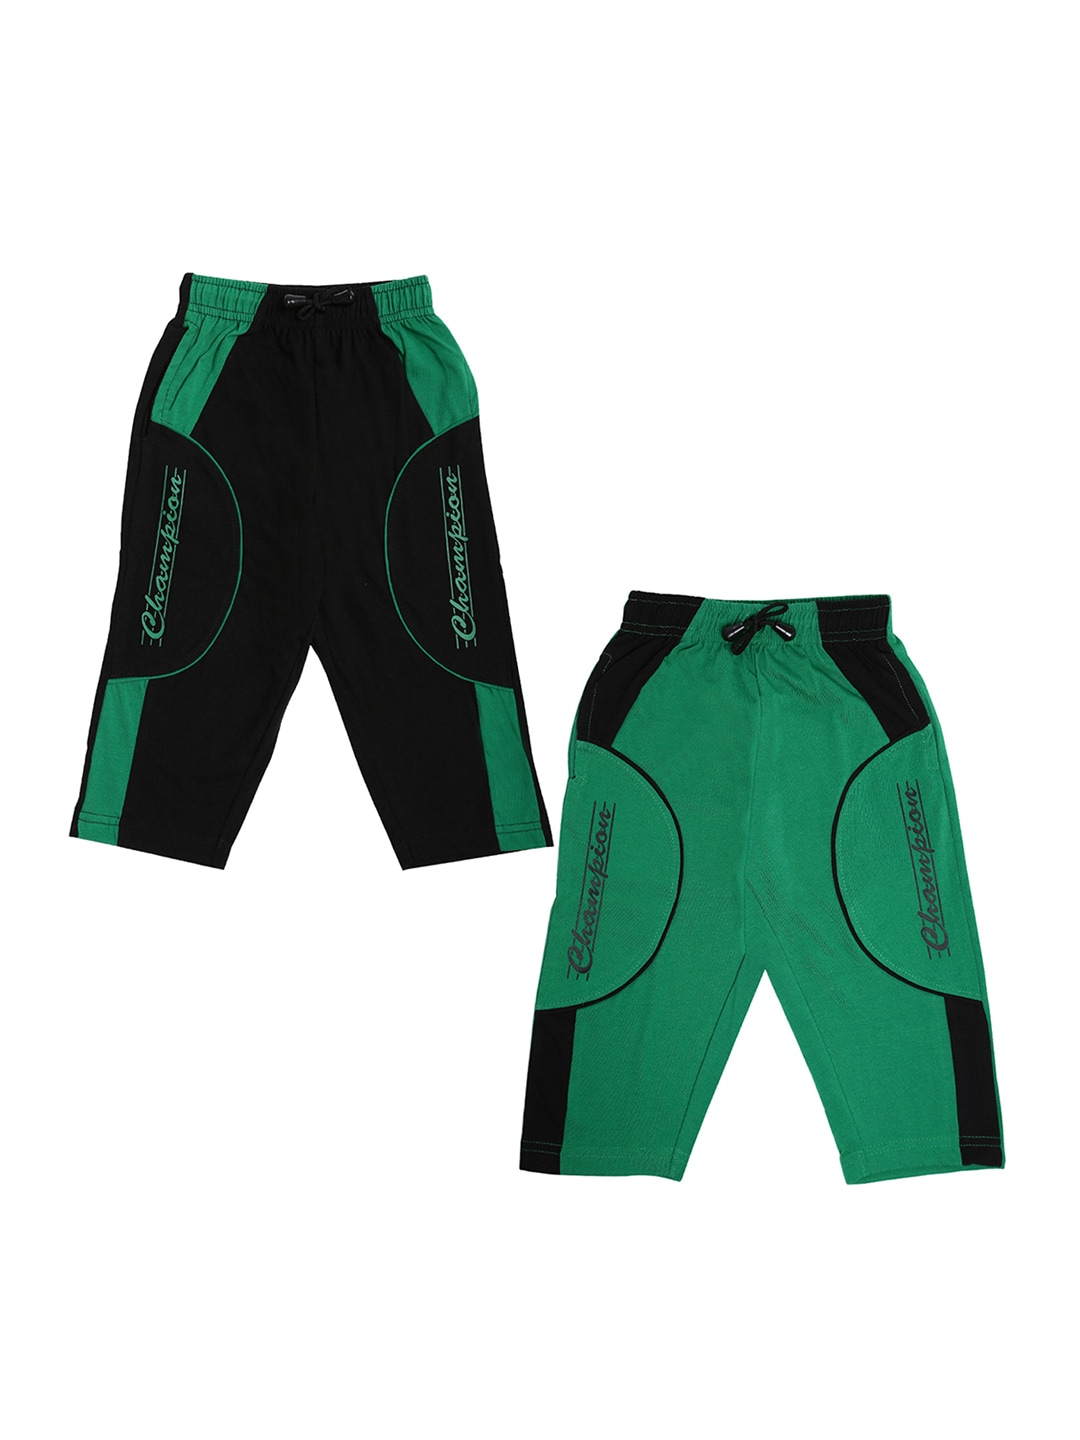 f9fef3249bde Champion Shorts - Buy Champion Shorts online in India